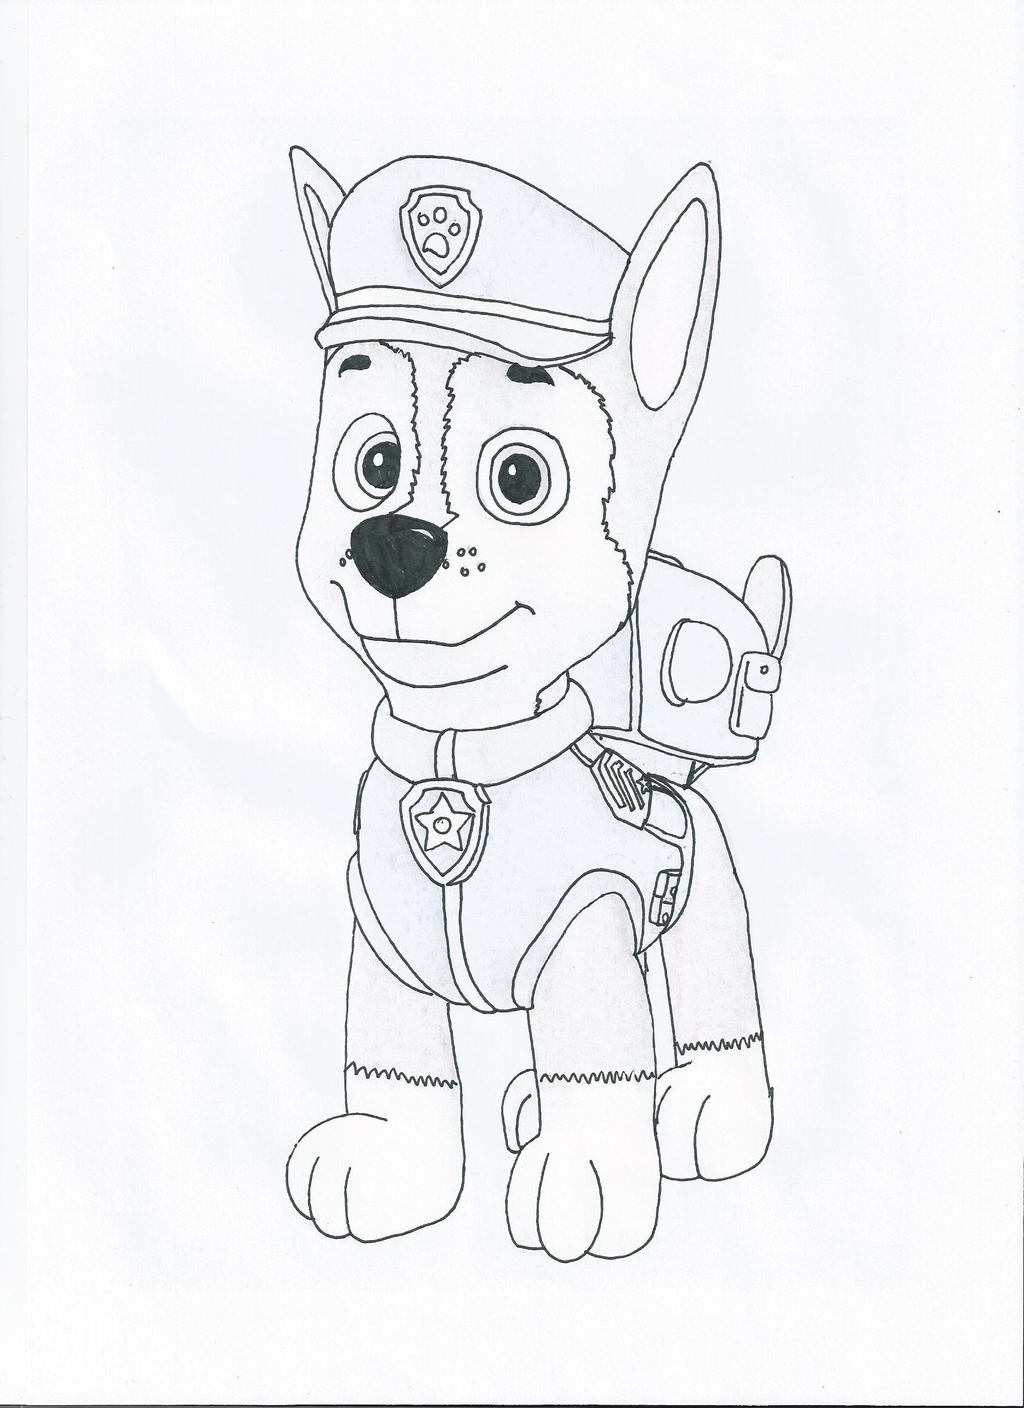 Paw patrol chase by pawpatrolfan66 on deviantart for Chase coloring page